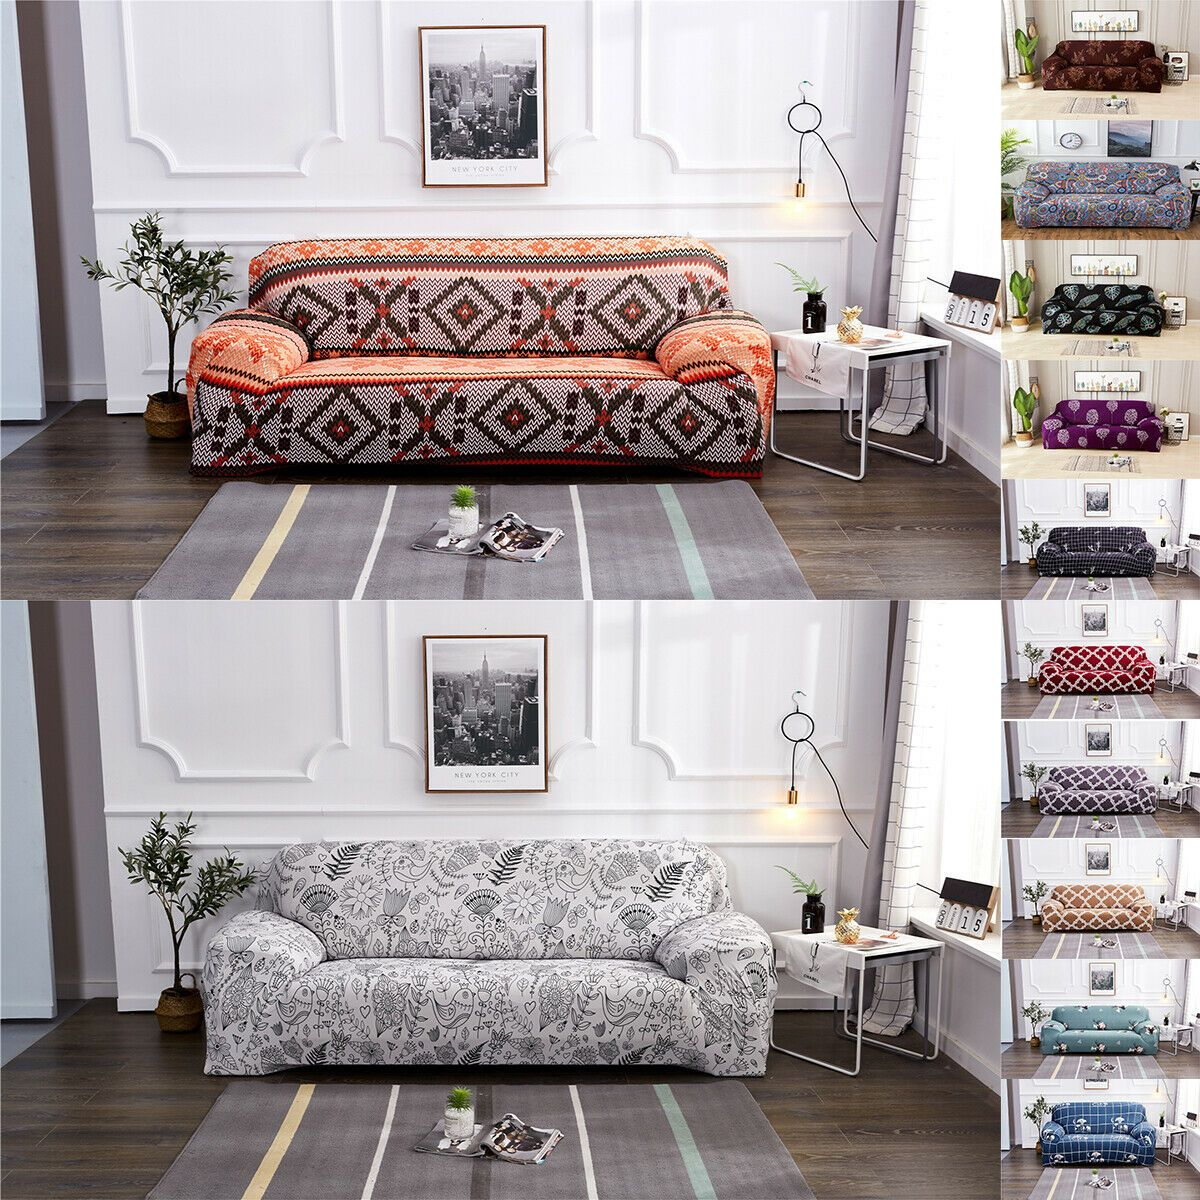 Us Easy Fit 1 2 3 4 Seater Floral Couch Stretch Sofa Cover Slipcovers Protector White Sofa Whitesofa In 2020 Fabric Sofa Cover Couch Covers Slipcovers Sofa Covers